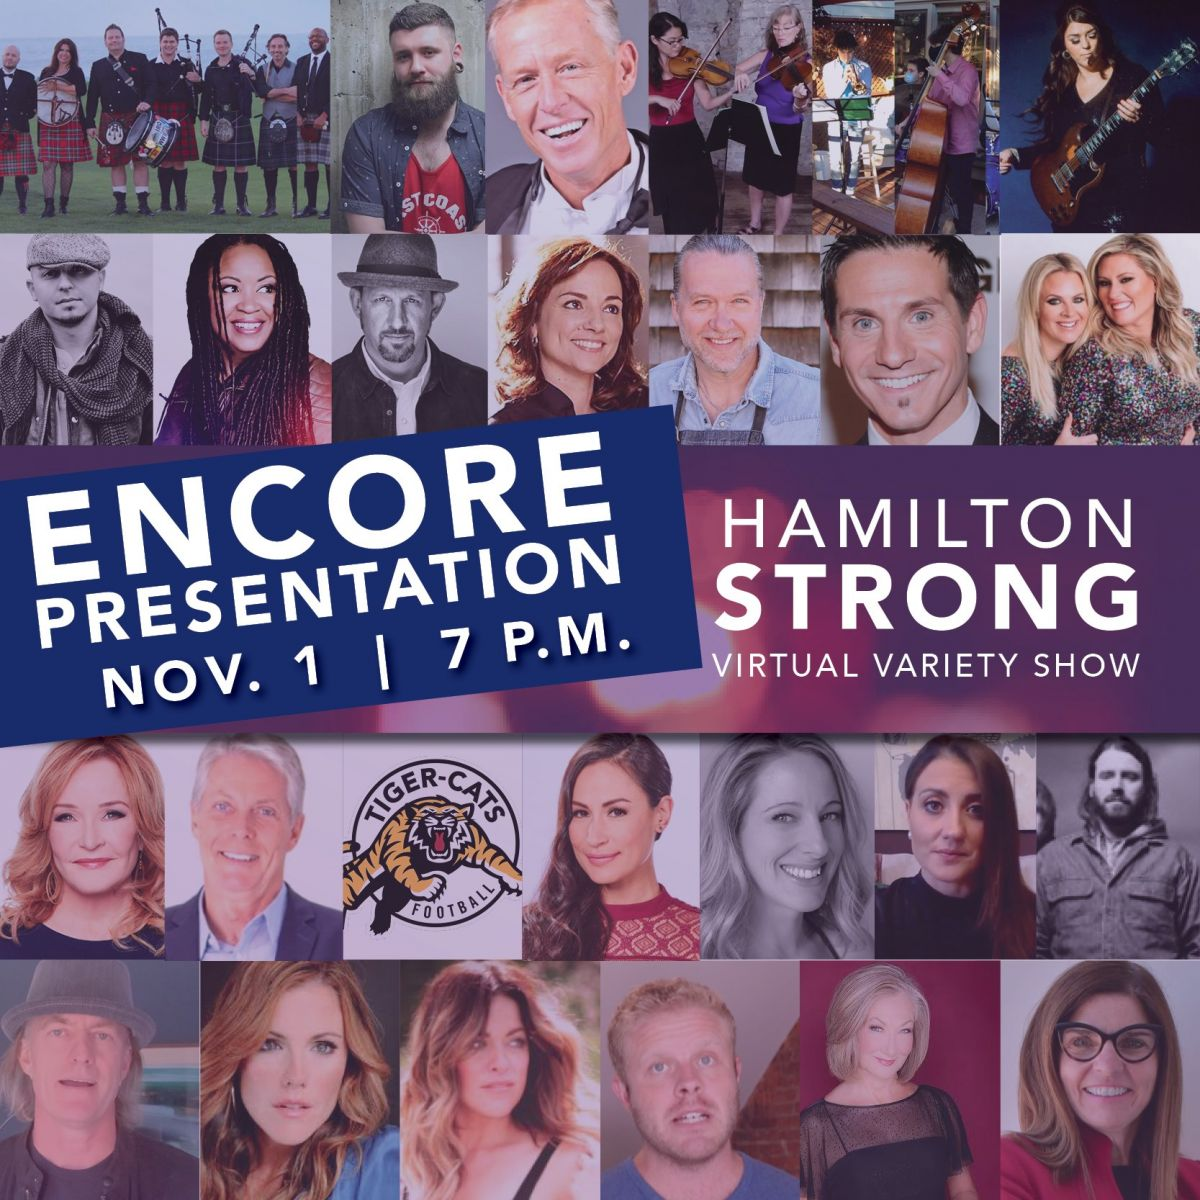 Encore Presentation of the Hamilton Strong Virtual Variety Show